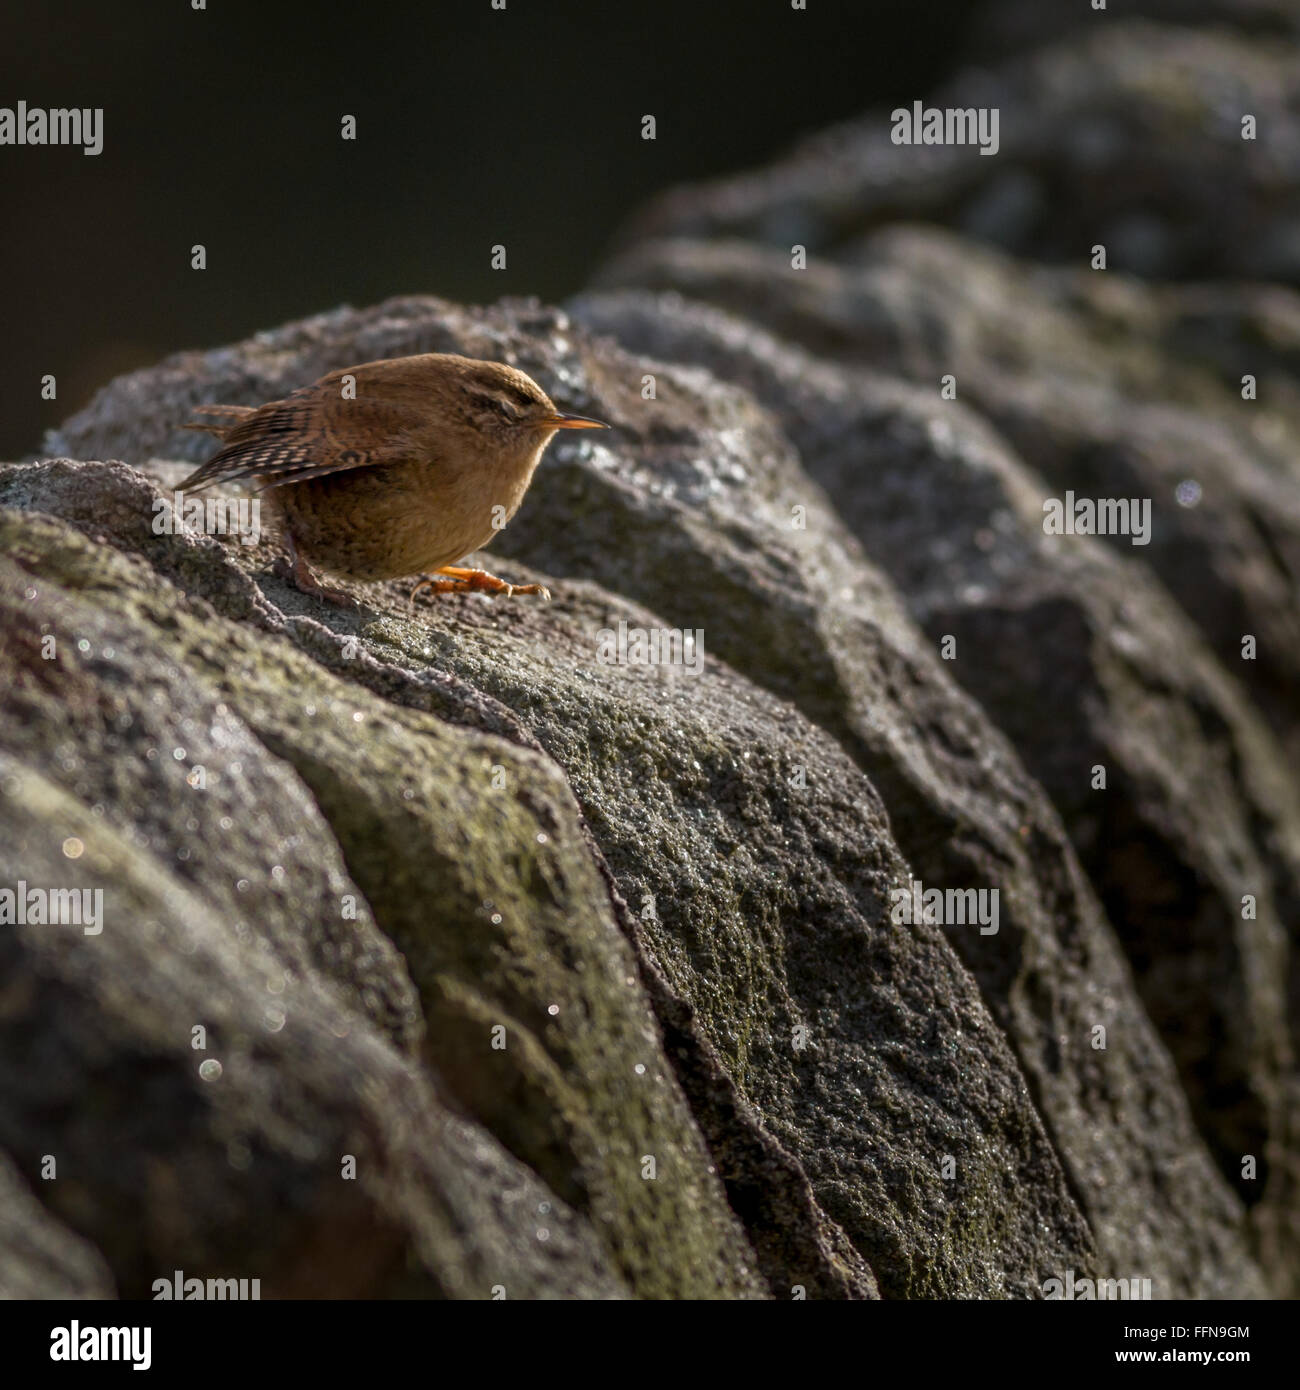 Leap of faith - Wren (troglodytes troglodytes) stepping with its eyes shut, Yorkshire. - Stock Image